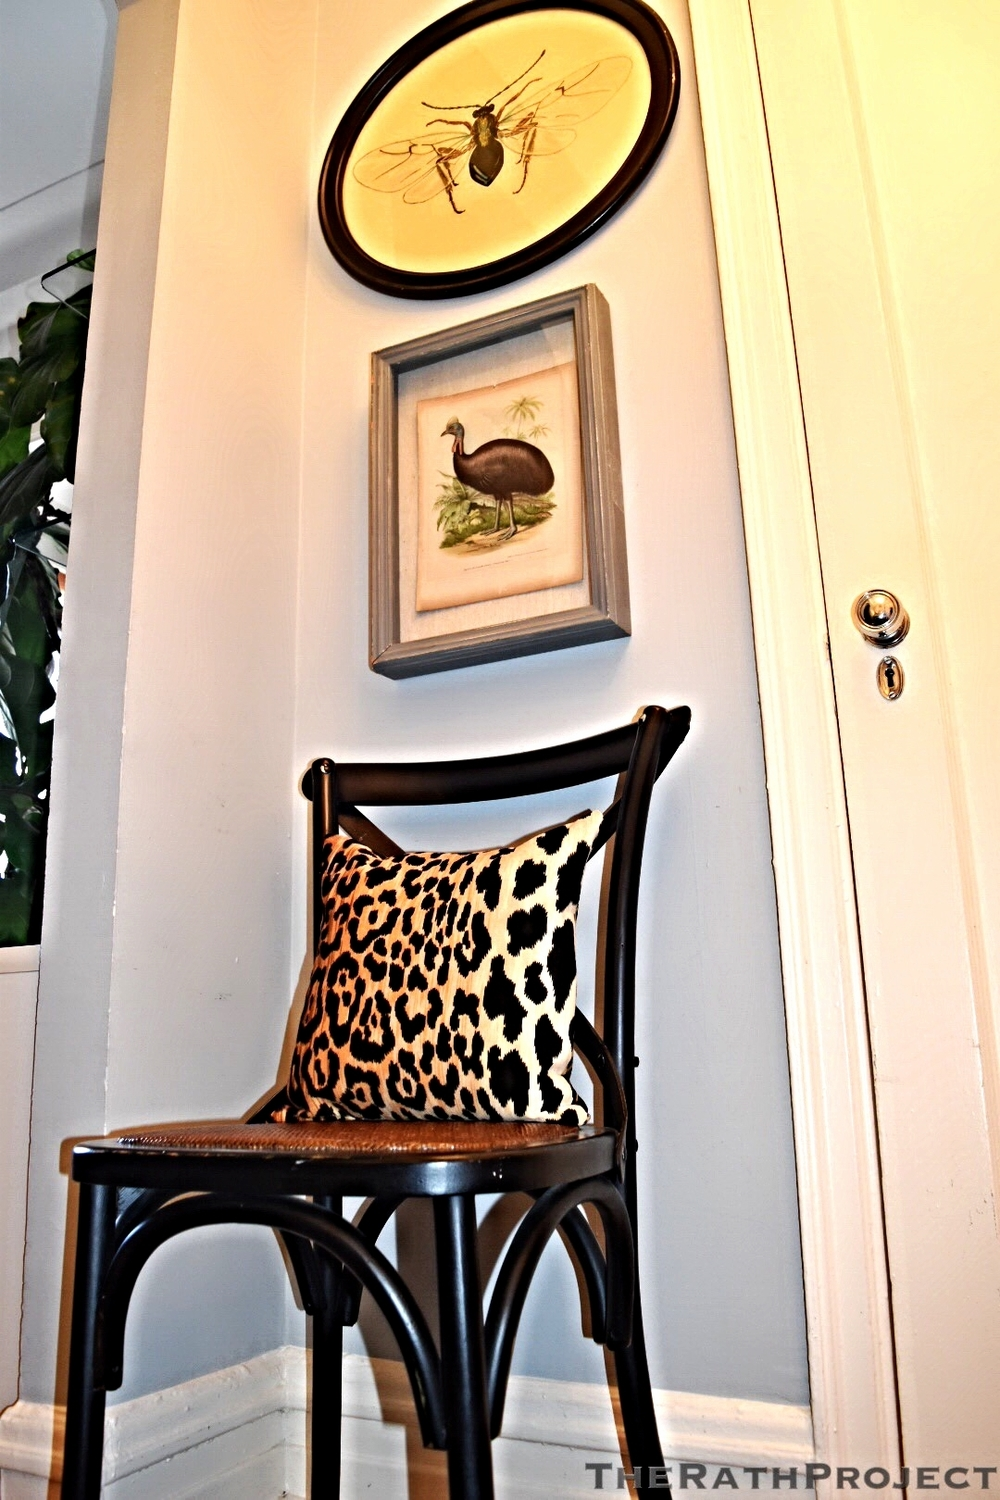 Quirky Display of Leopard in Our Foyer